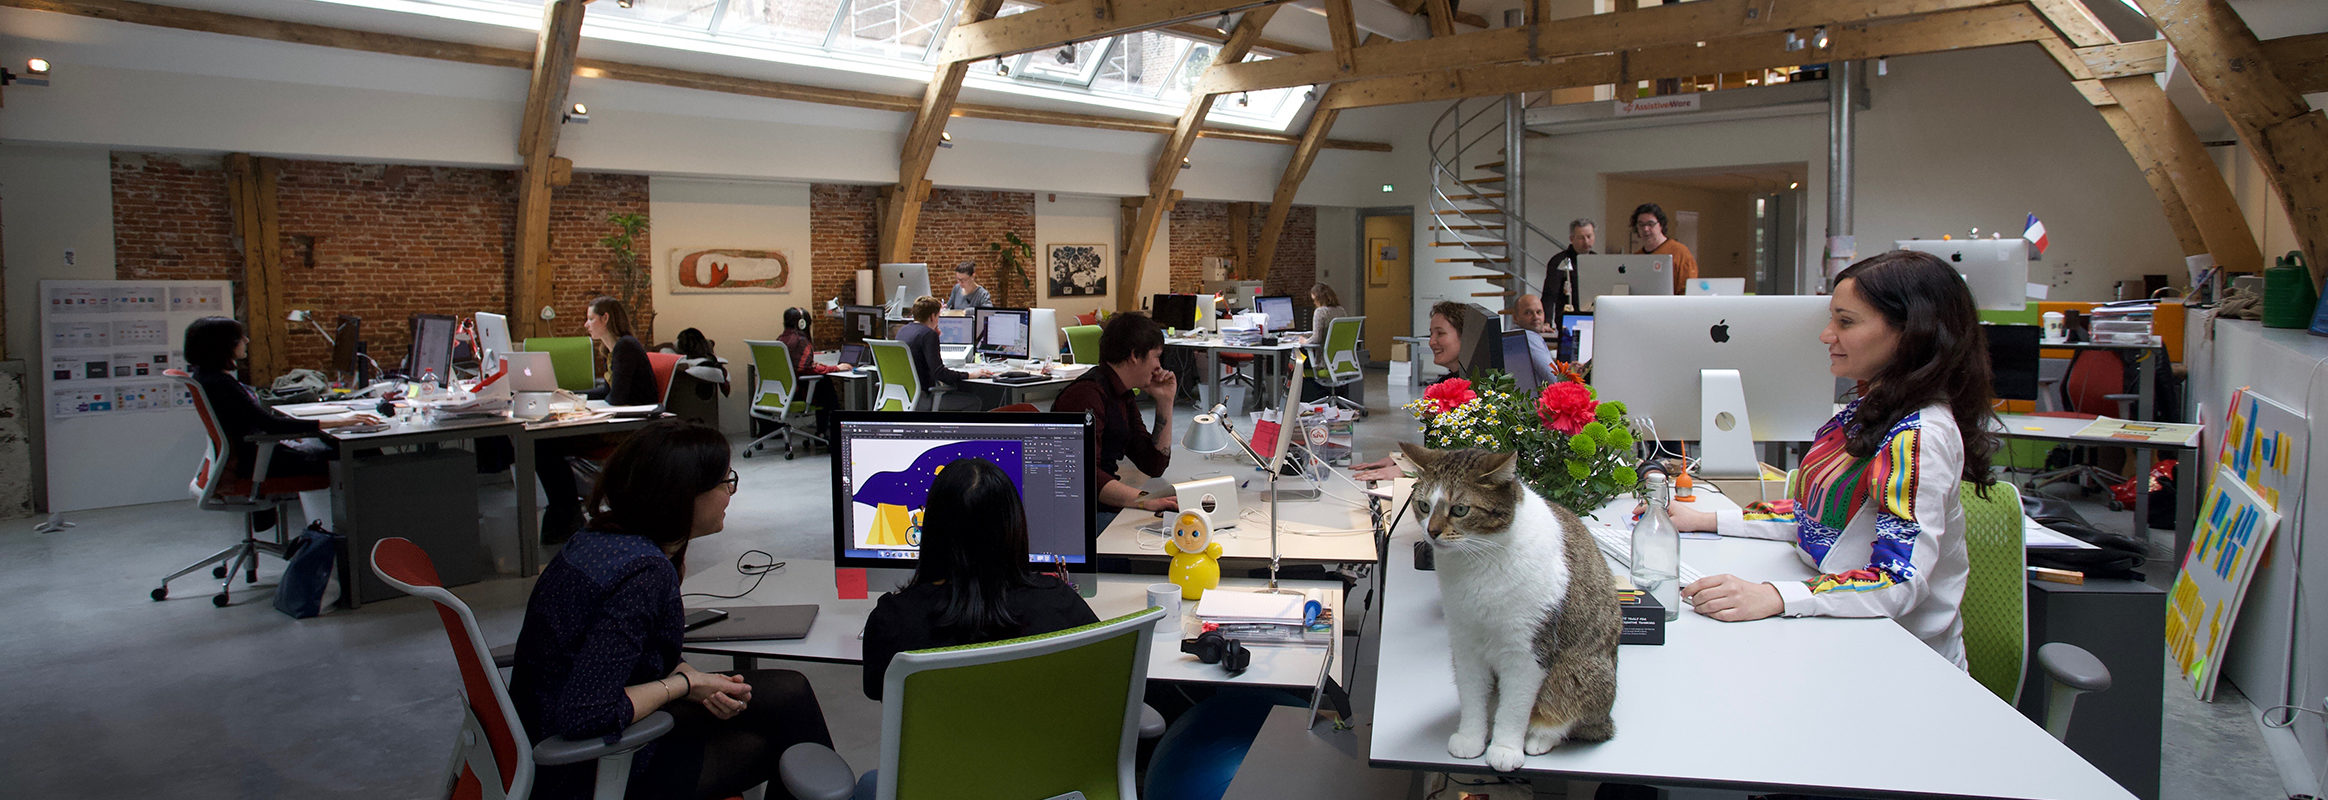 AssistiveWare's spacious office in daylight entering through skylights. People are sitting and standing at desks. Starsky, one of the two office cats, sits prominently on the table closest to the camera.